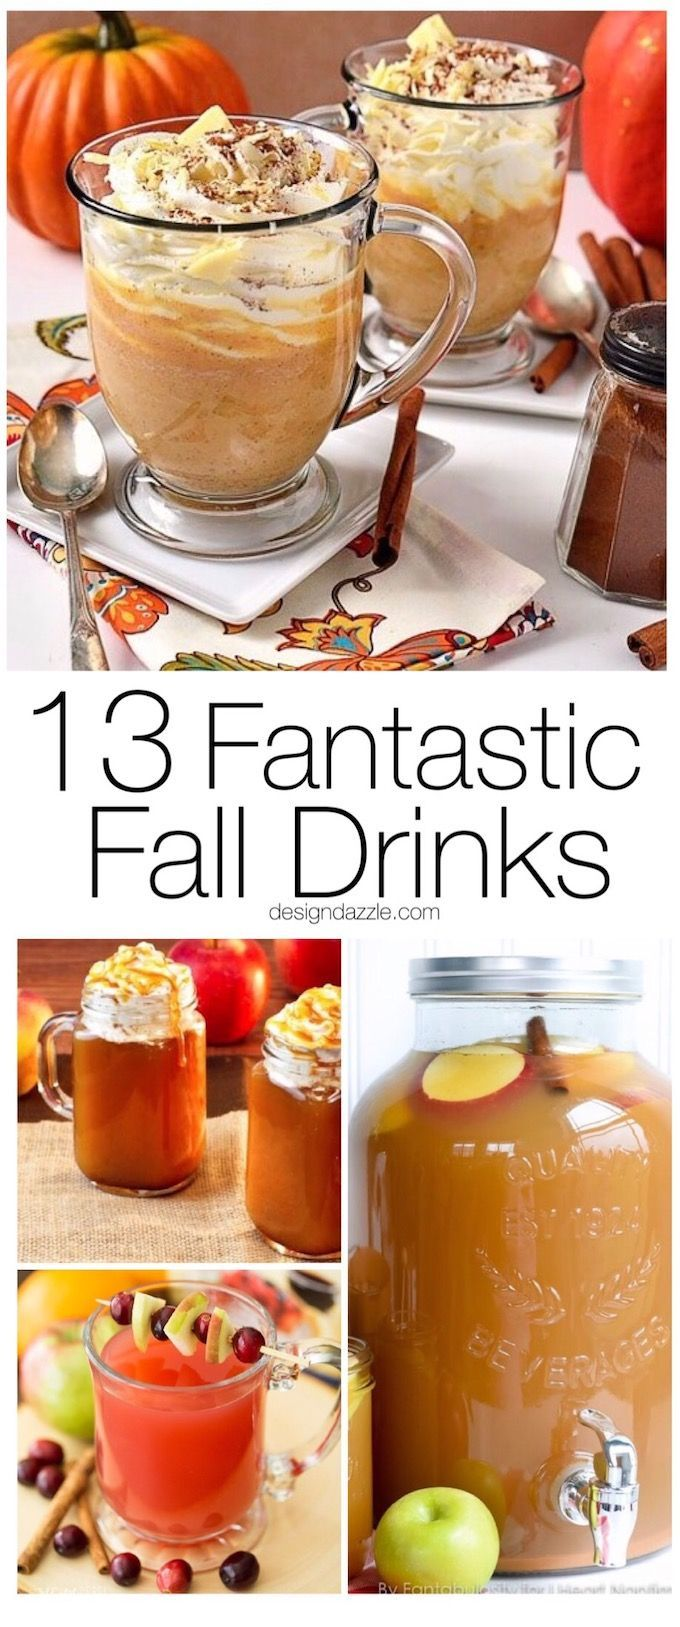 13 Fantastic Fall Drinks #fallfoods